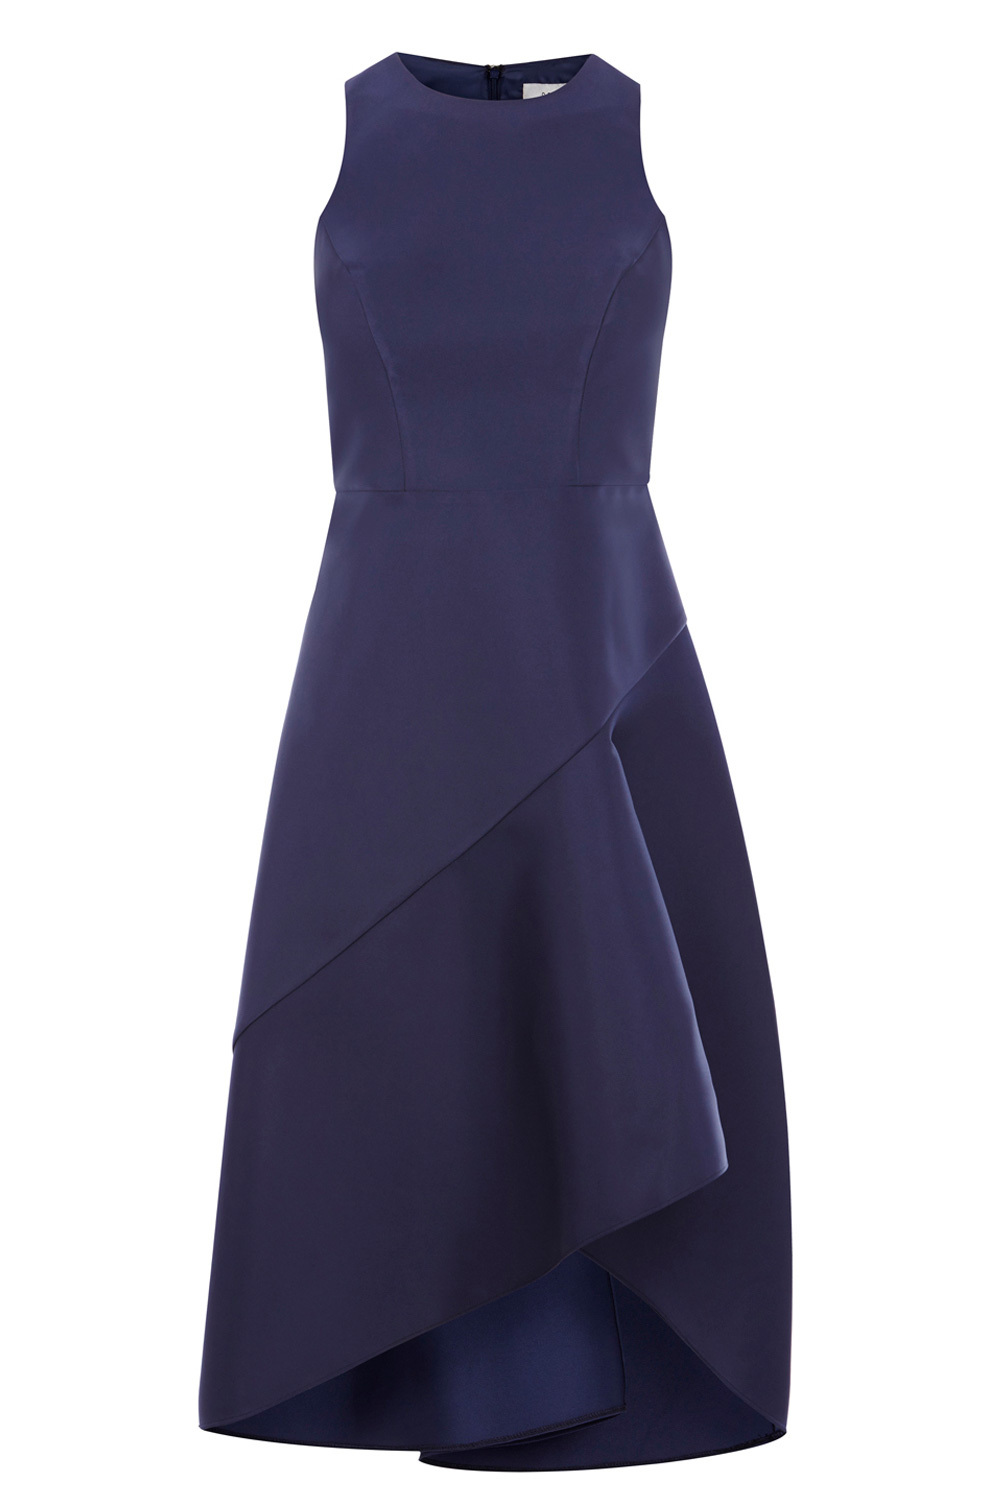 Cara Satin Midi Dress - pattern: plain; sleeve style: sleeveless; style: full skirt; predominant colour: navy; occasions: evening; length: just above the knee; fit: fitted at waist & bust; fibres: polyester/polyamide - stretch; neckline: crew; sleeve length: sleeveless; pattern type: fabric; texture group: jersey - stretchy/drapey; season: a/w 2016; wardrobe: event